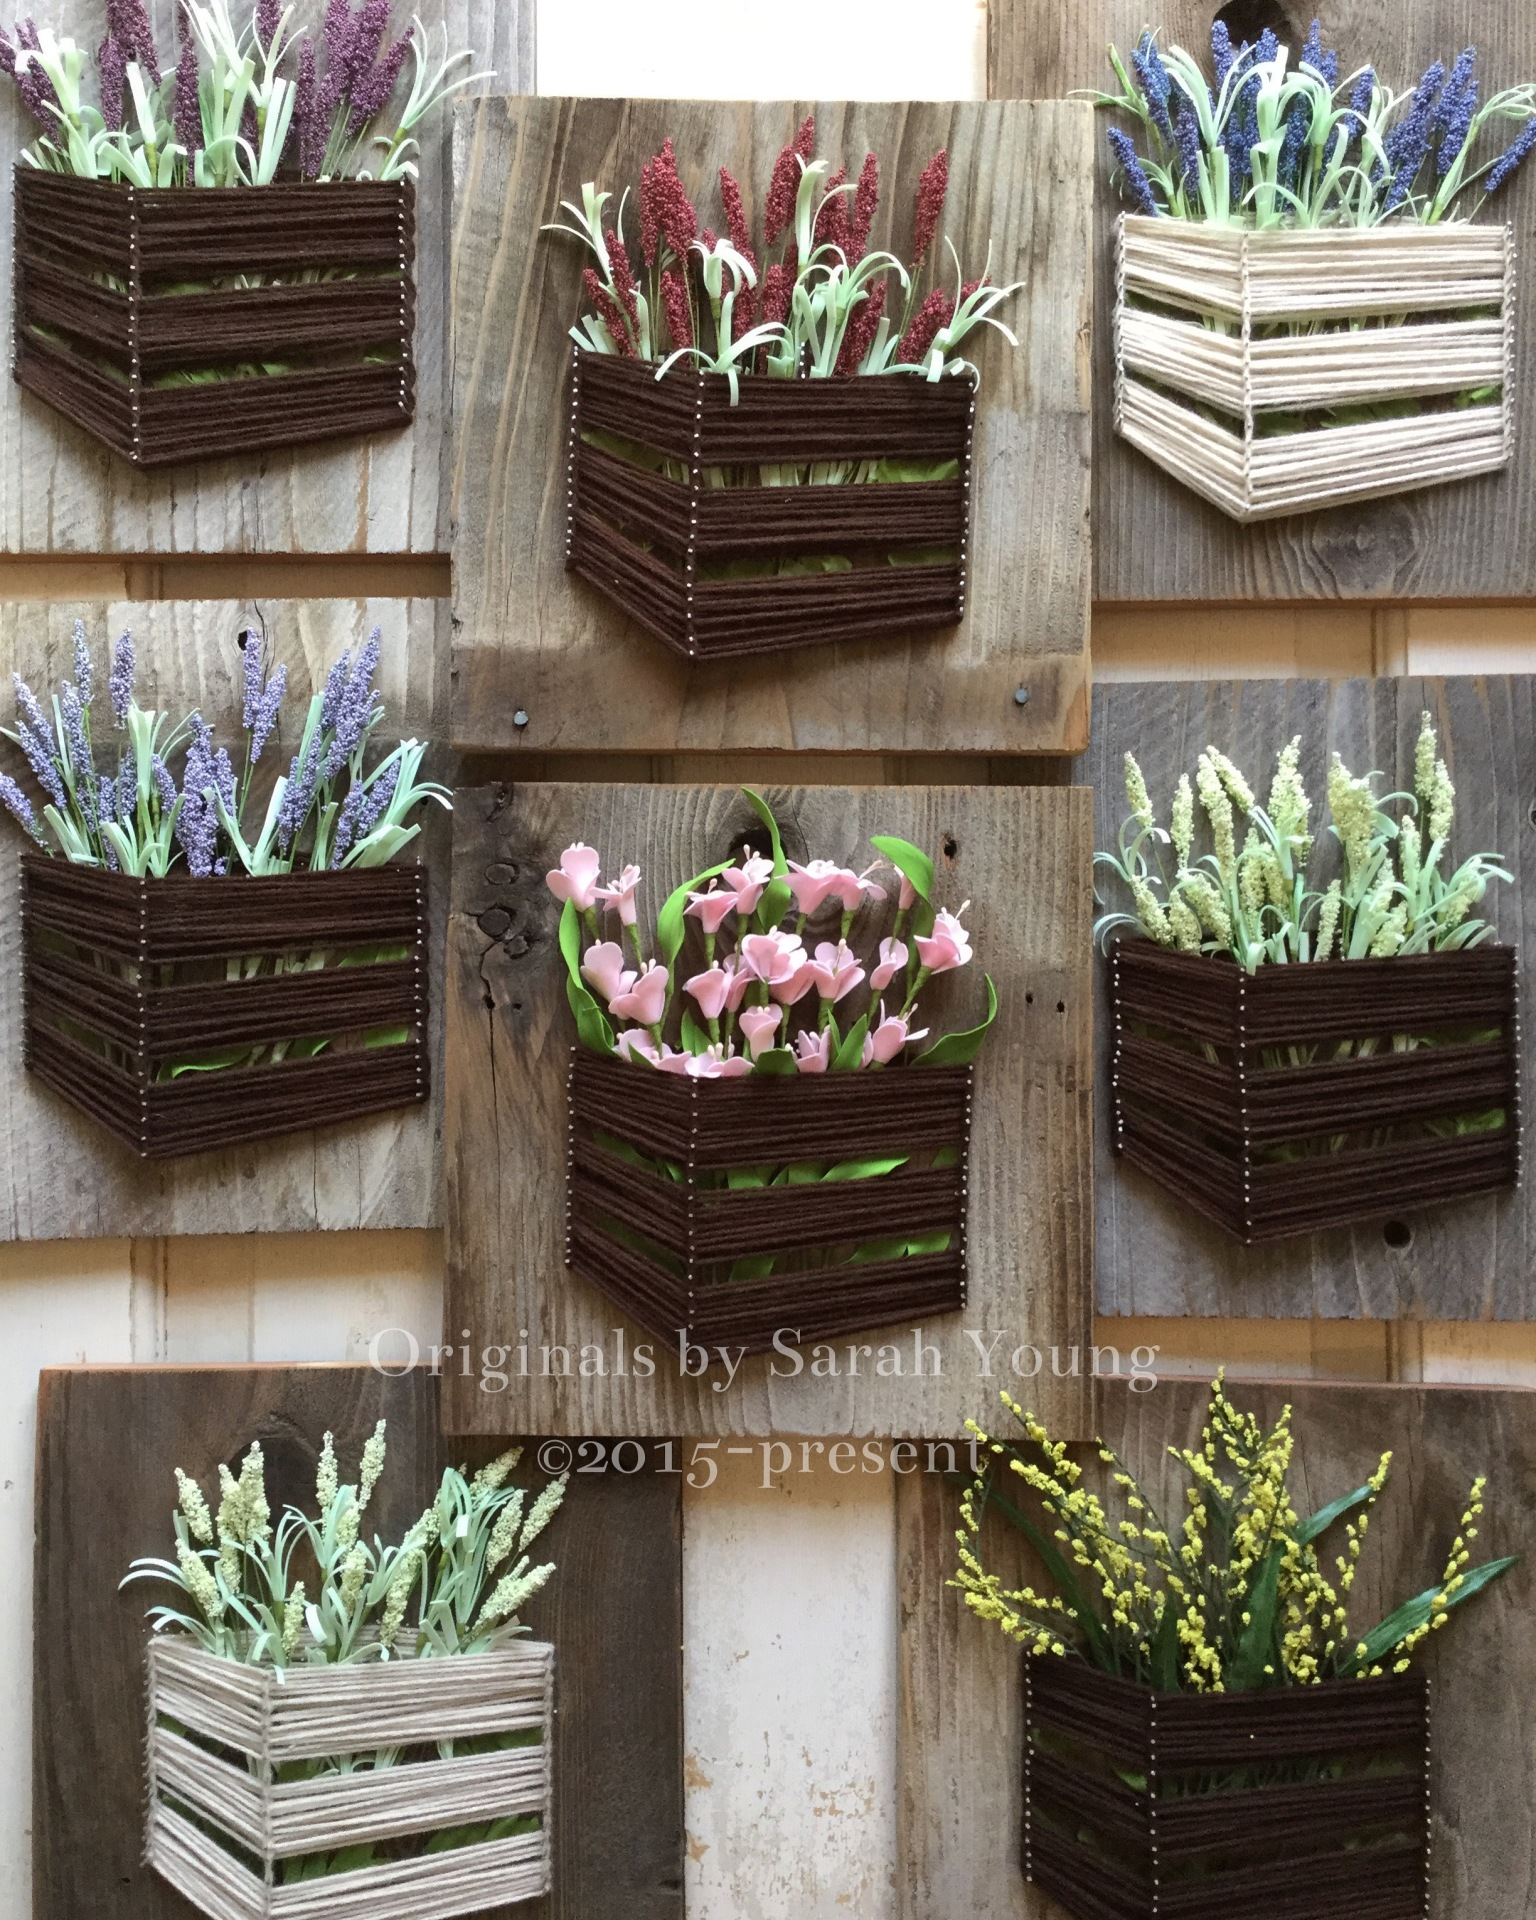 String Crate with Flowers